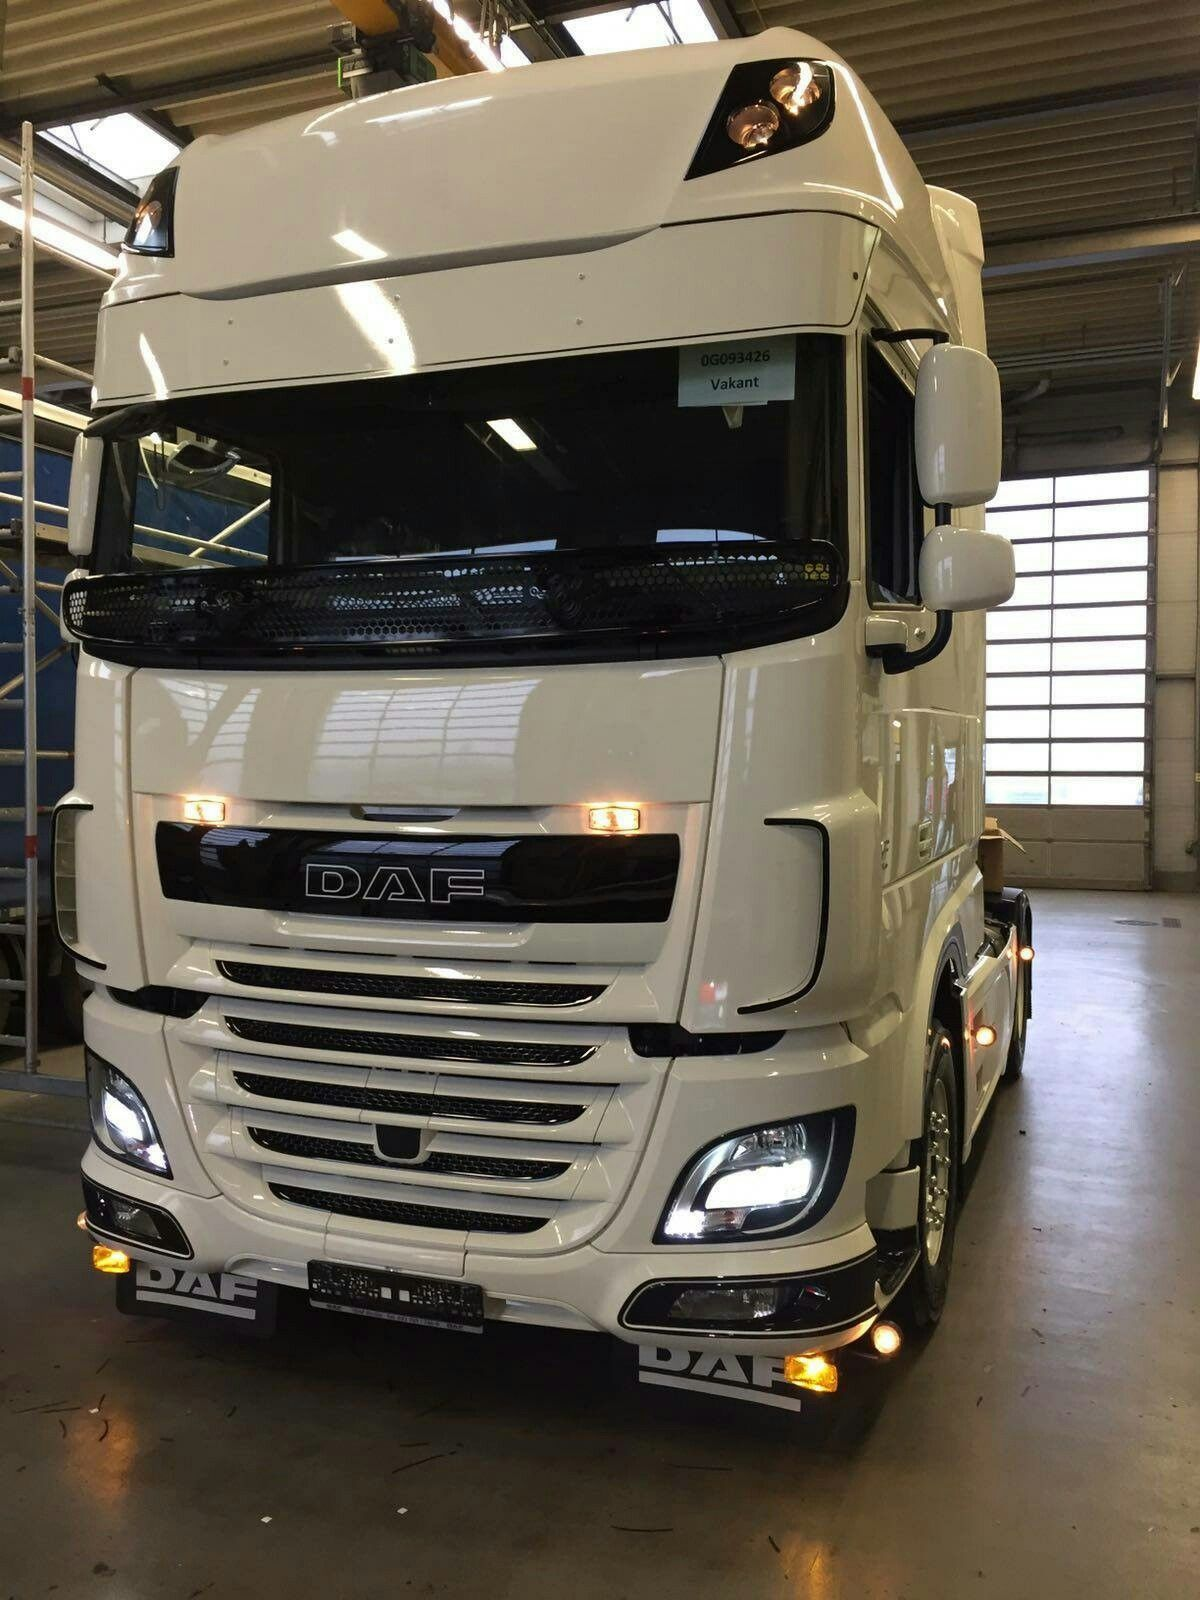 daf xf 106 trucks pinterest tractor semi trucks and. Black Bedroom Furniture Sets. Home Design Ideas